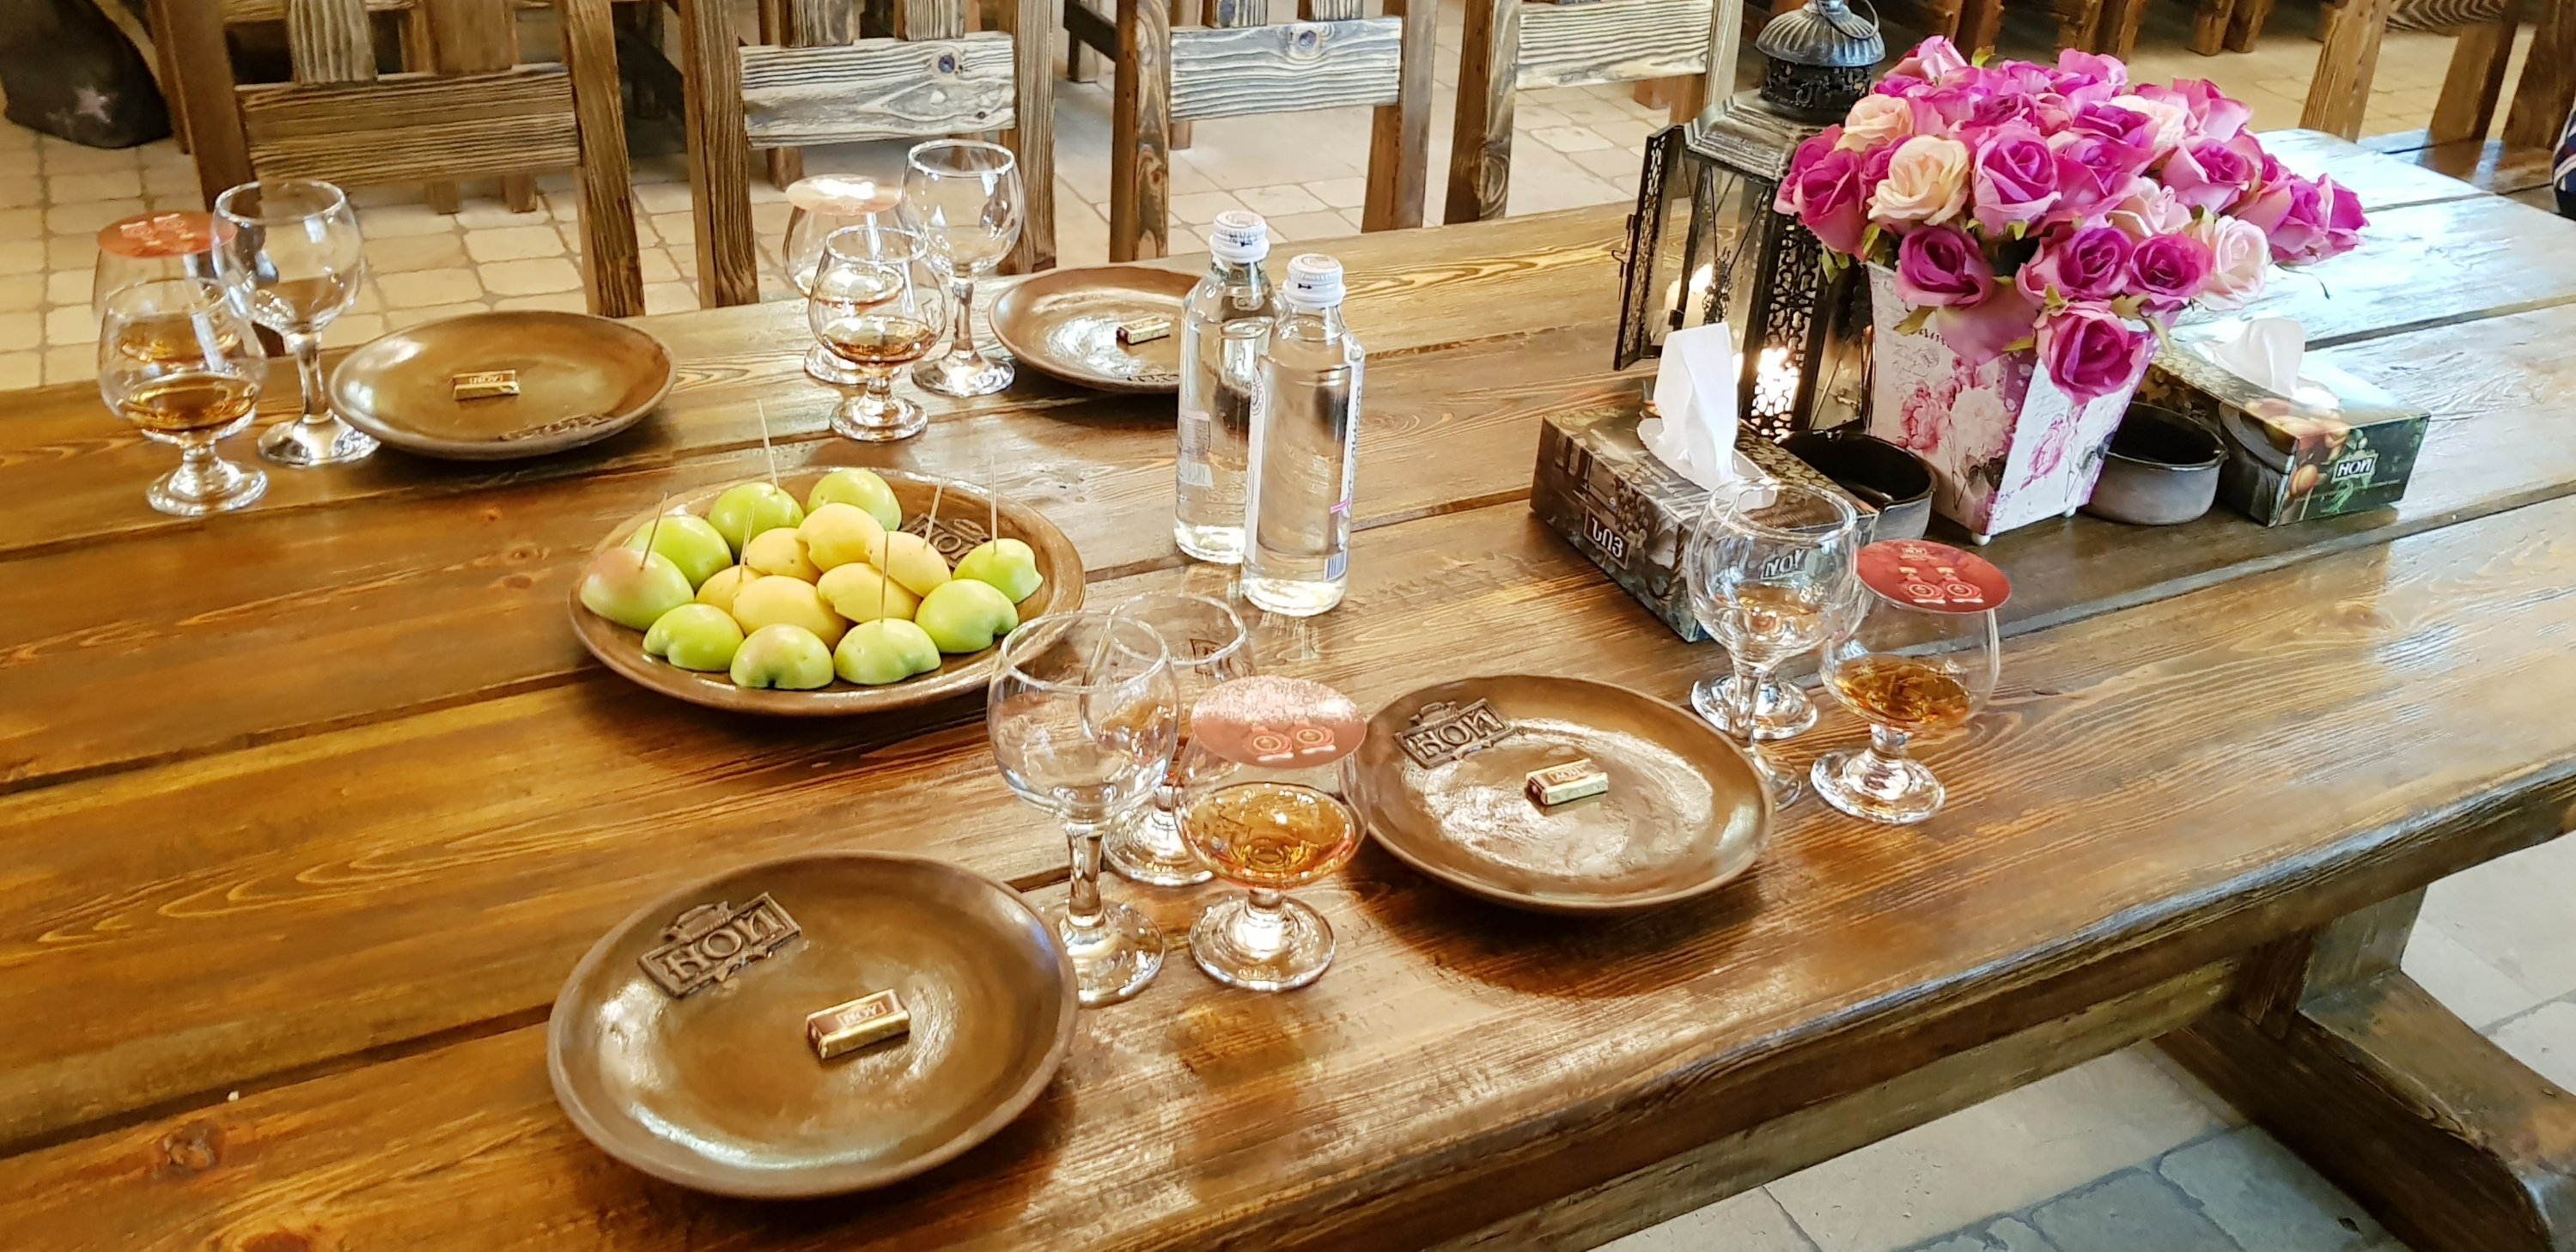 Table setting with brandies and roses